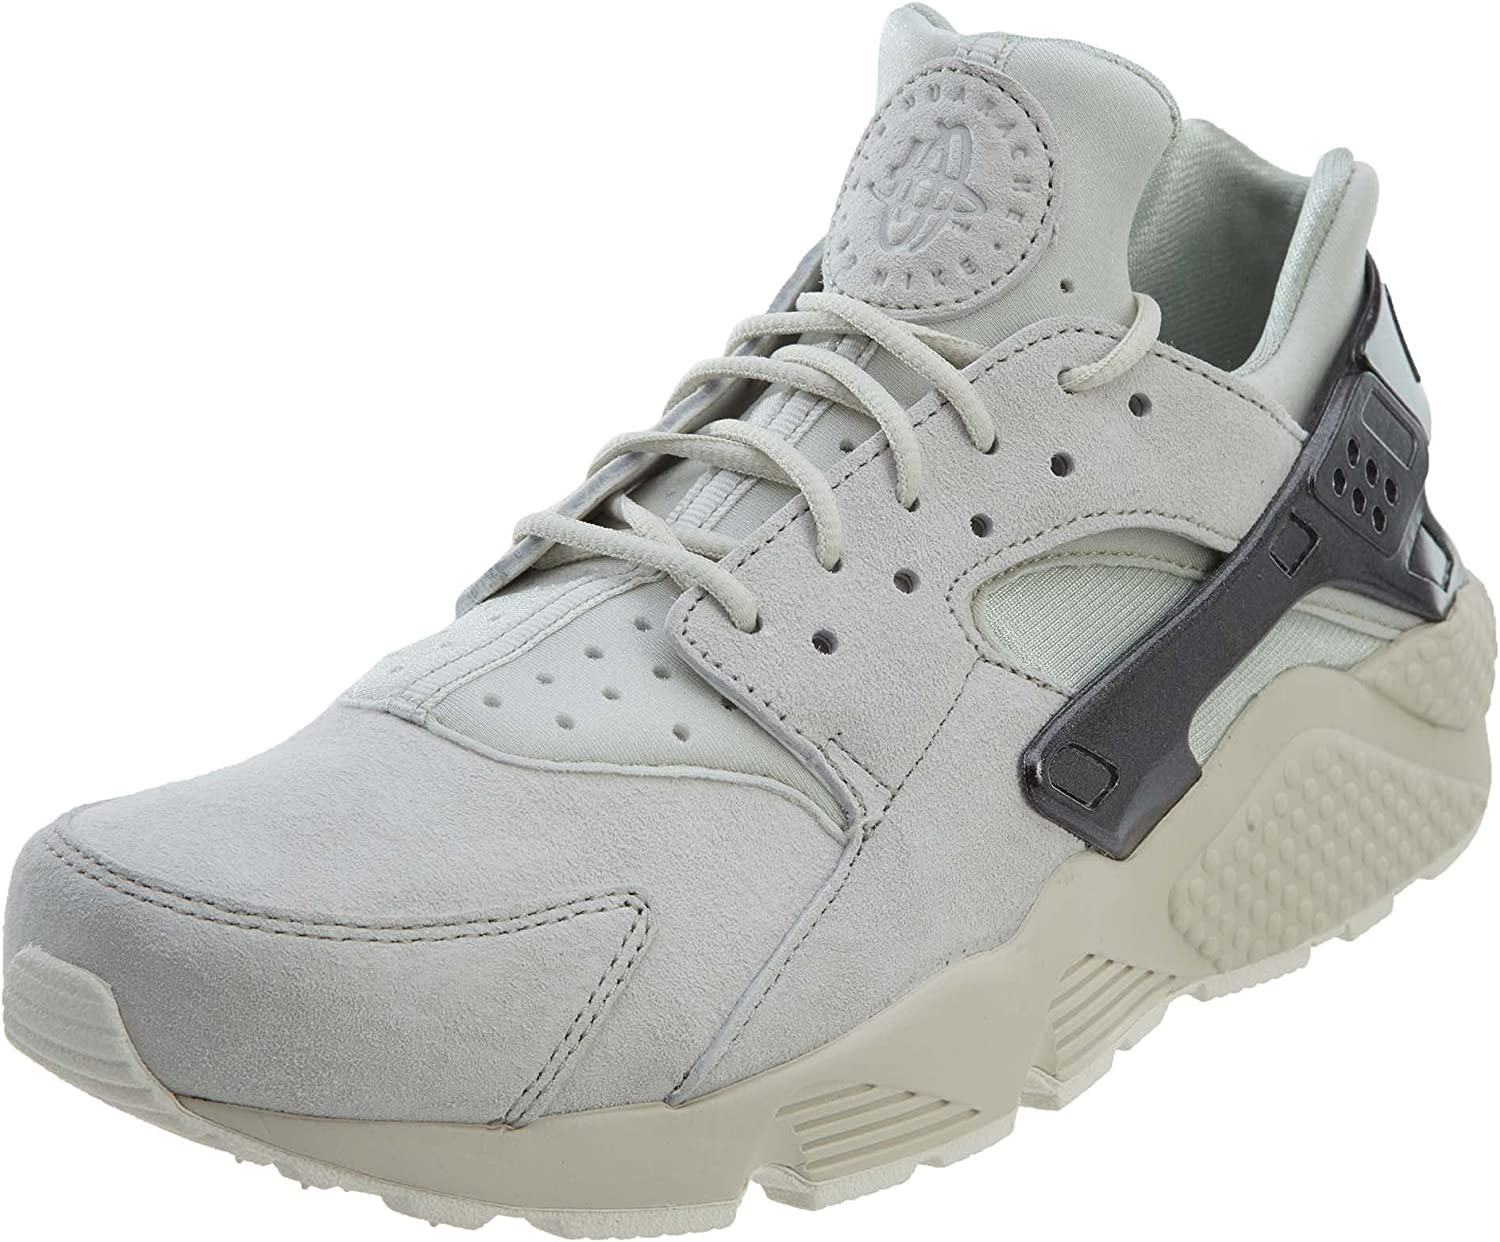 Nike Mens Air Huarache Premium Light Bone 704830 100 Running